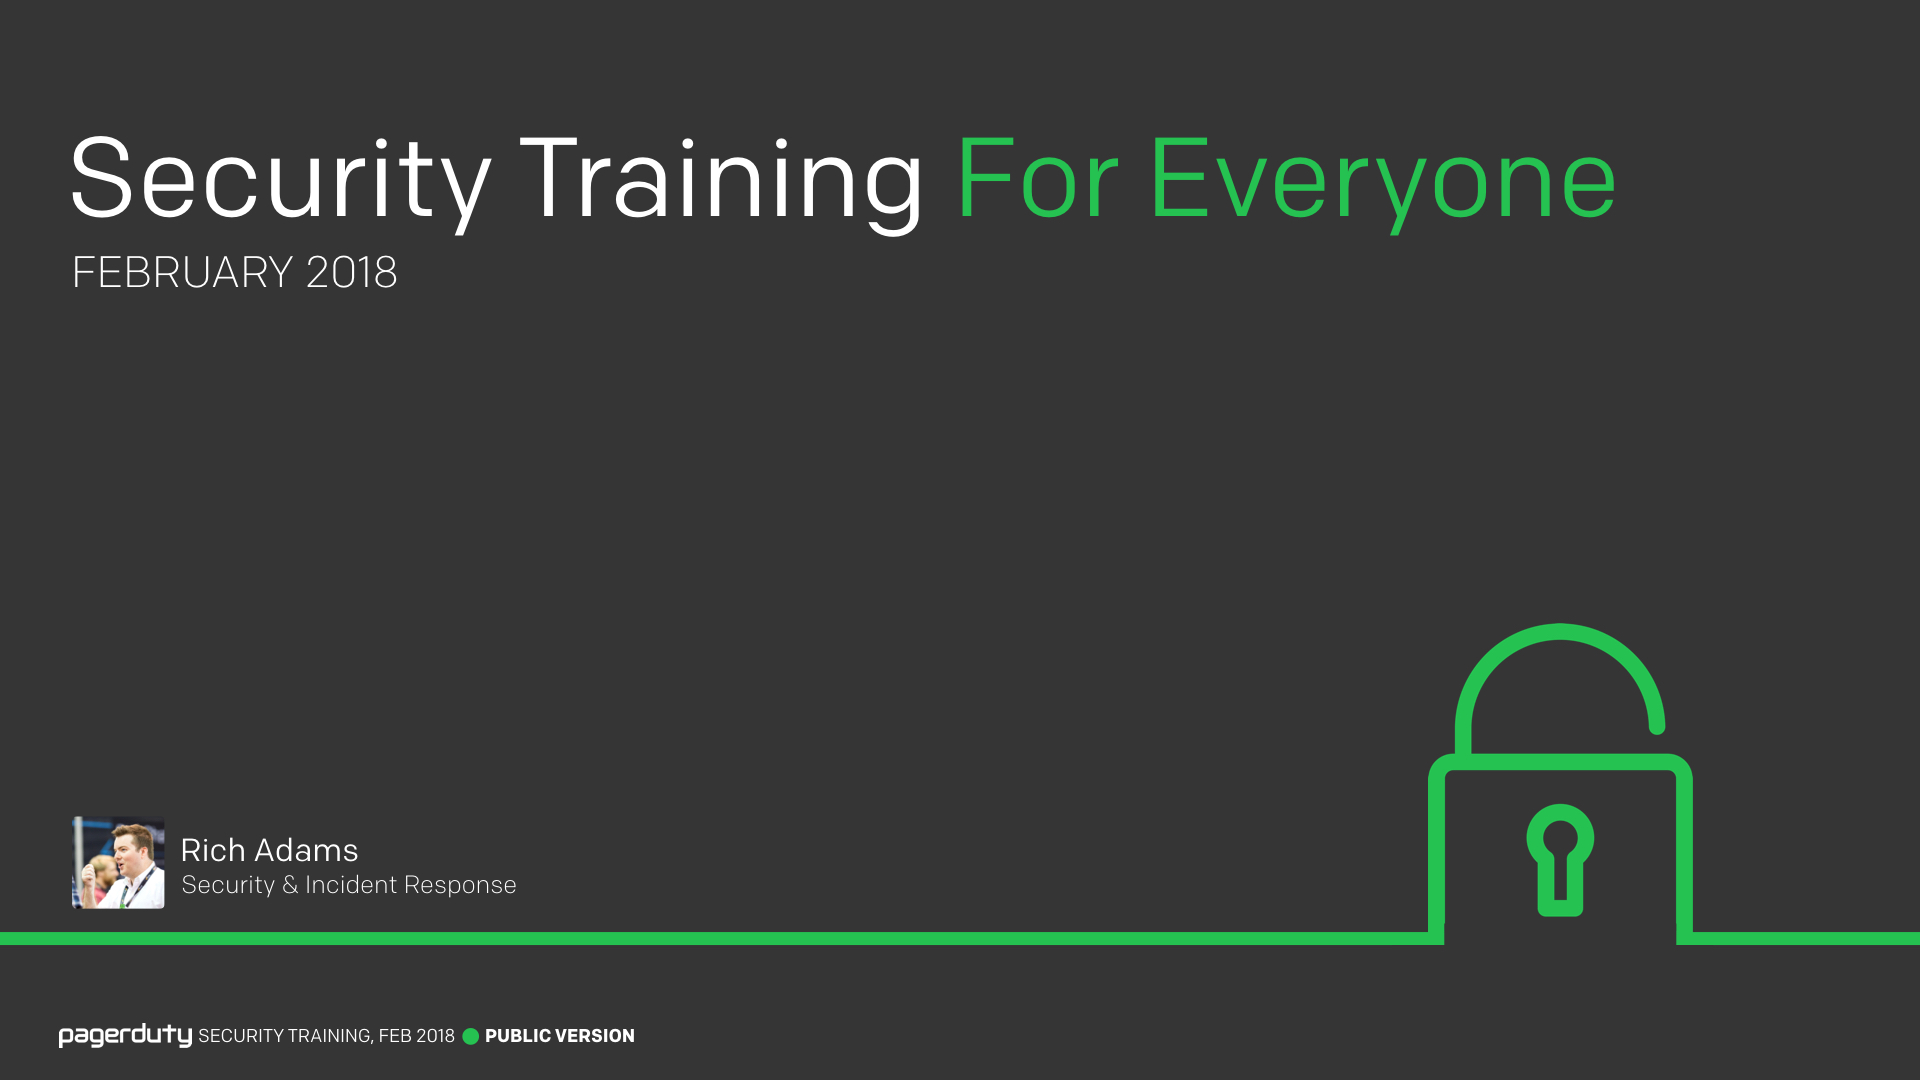 For Everyone Pagerduty Security Training Lock Diagram Quotes 001